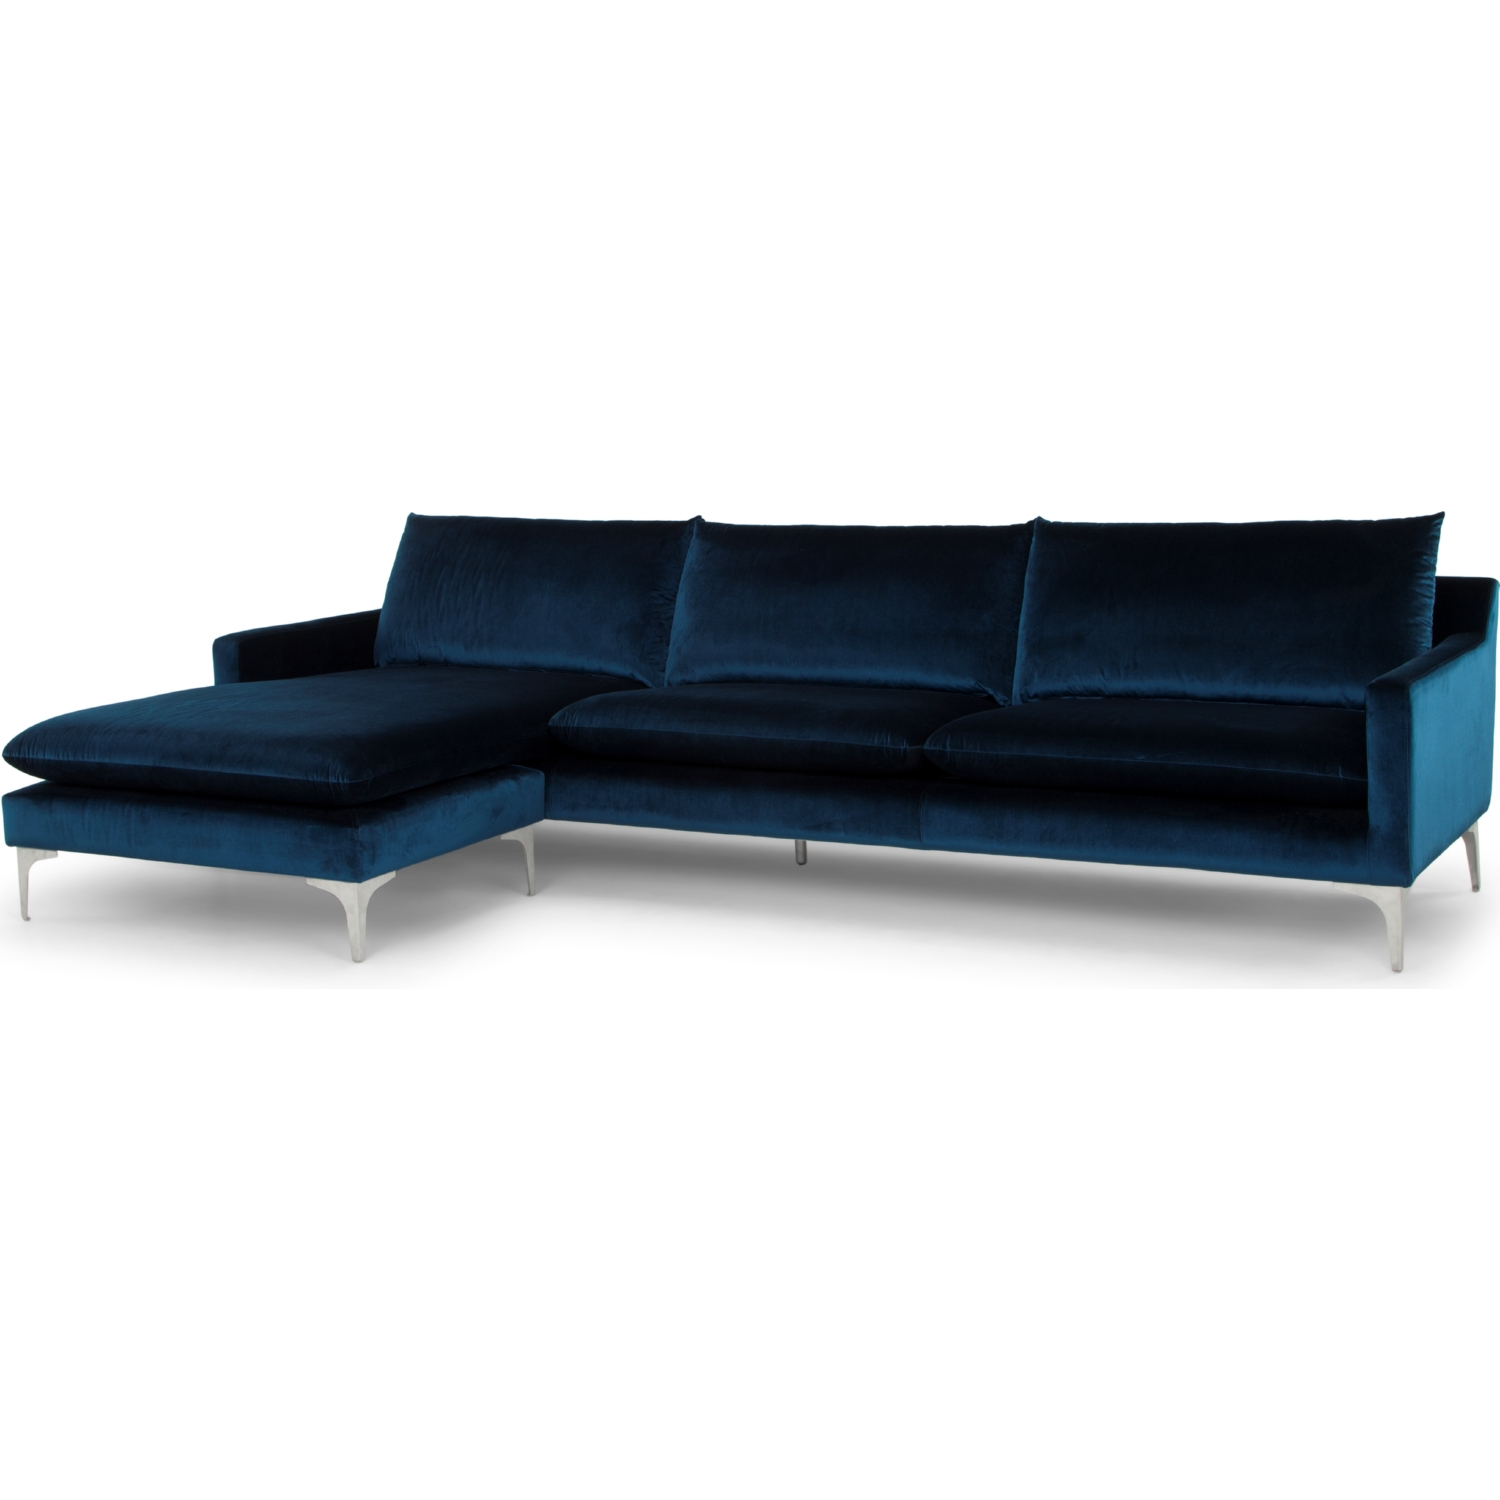 Anders Sectional Sofa w/ Left Chaise in Navy Blue Fabric on Brushed Stainless Legs  sc 1 st  Dynamic Home Decor : sectional sofa left chaise - Sectionals, Sofas & Couches